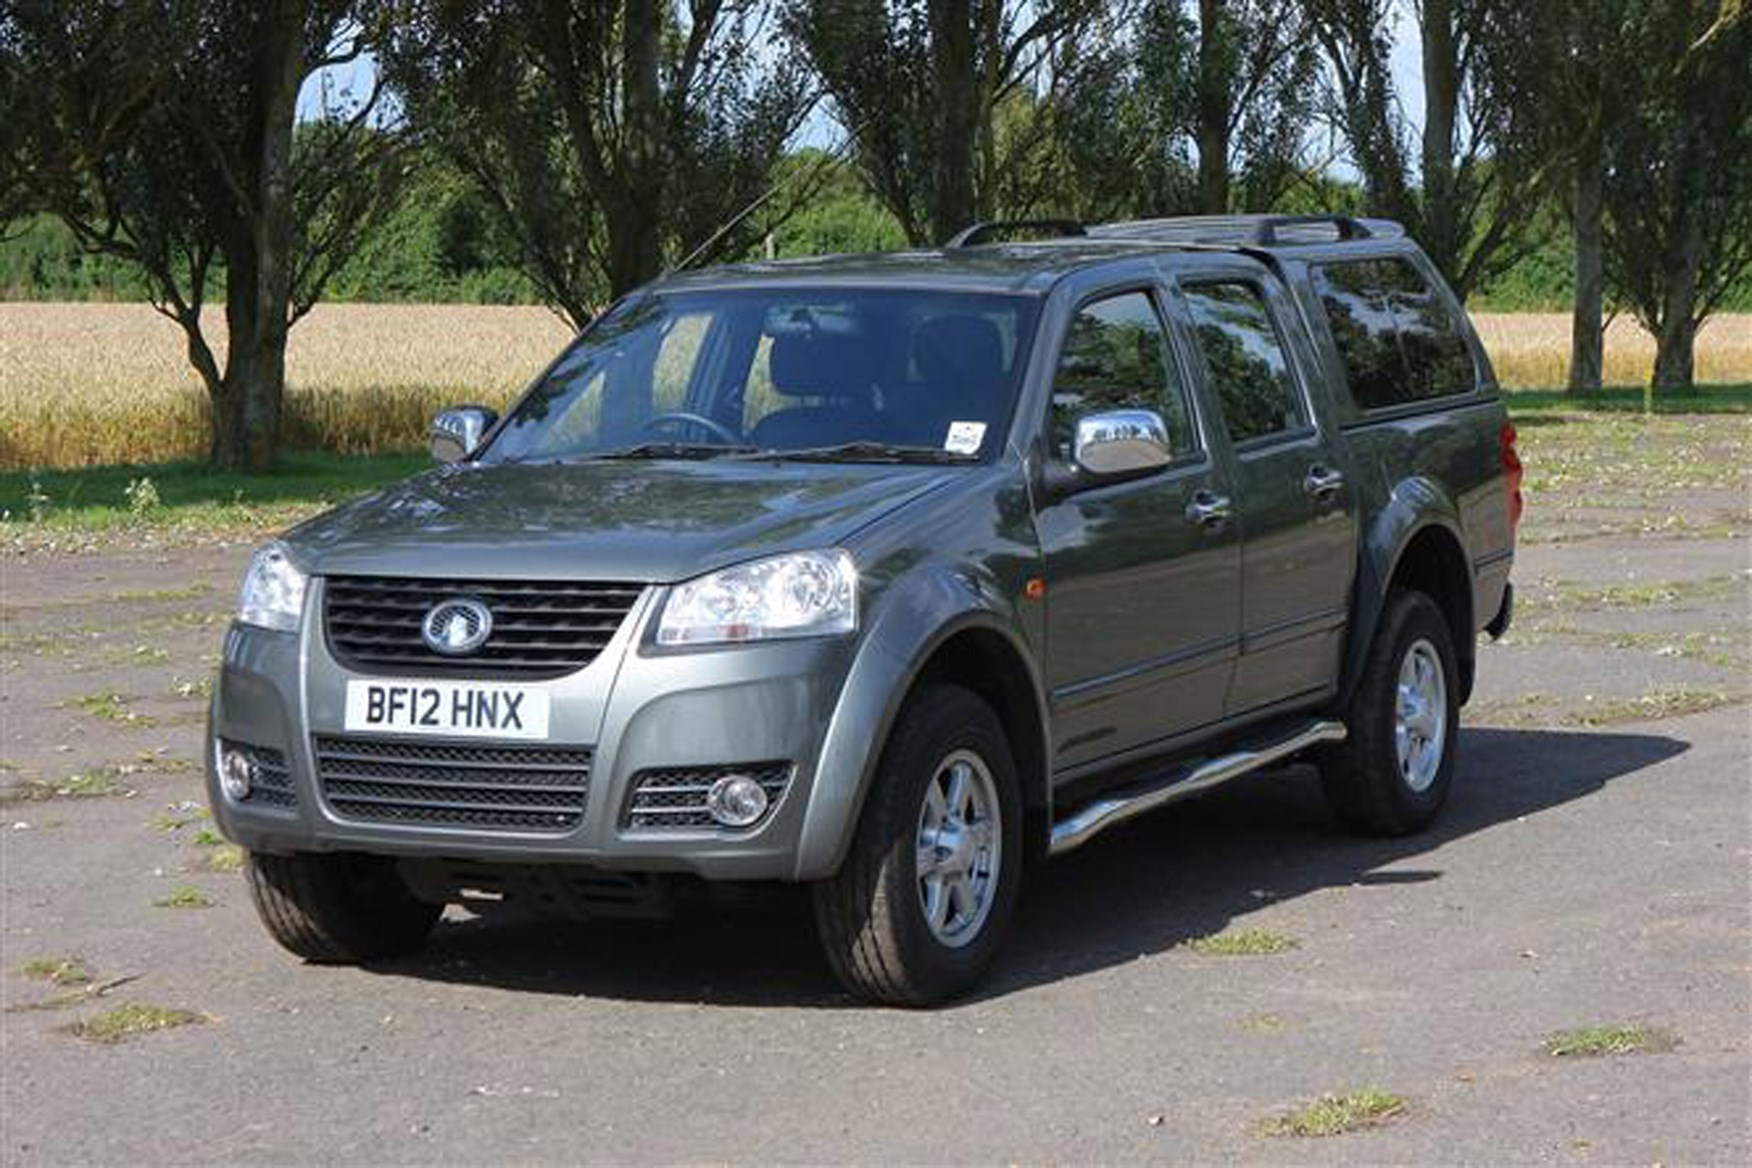 Great Wall Steed full review on Parkers Vans - front exterior